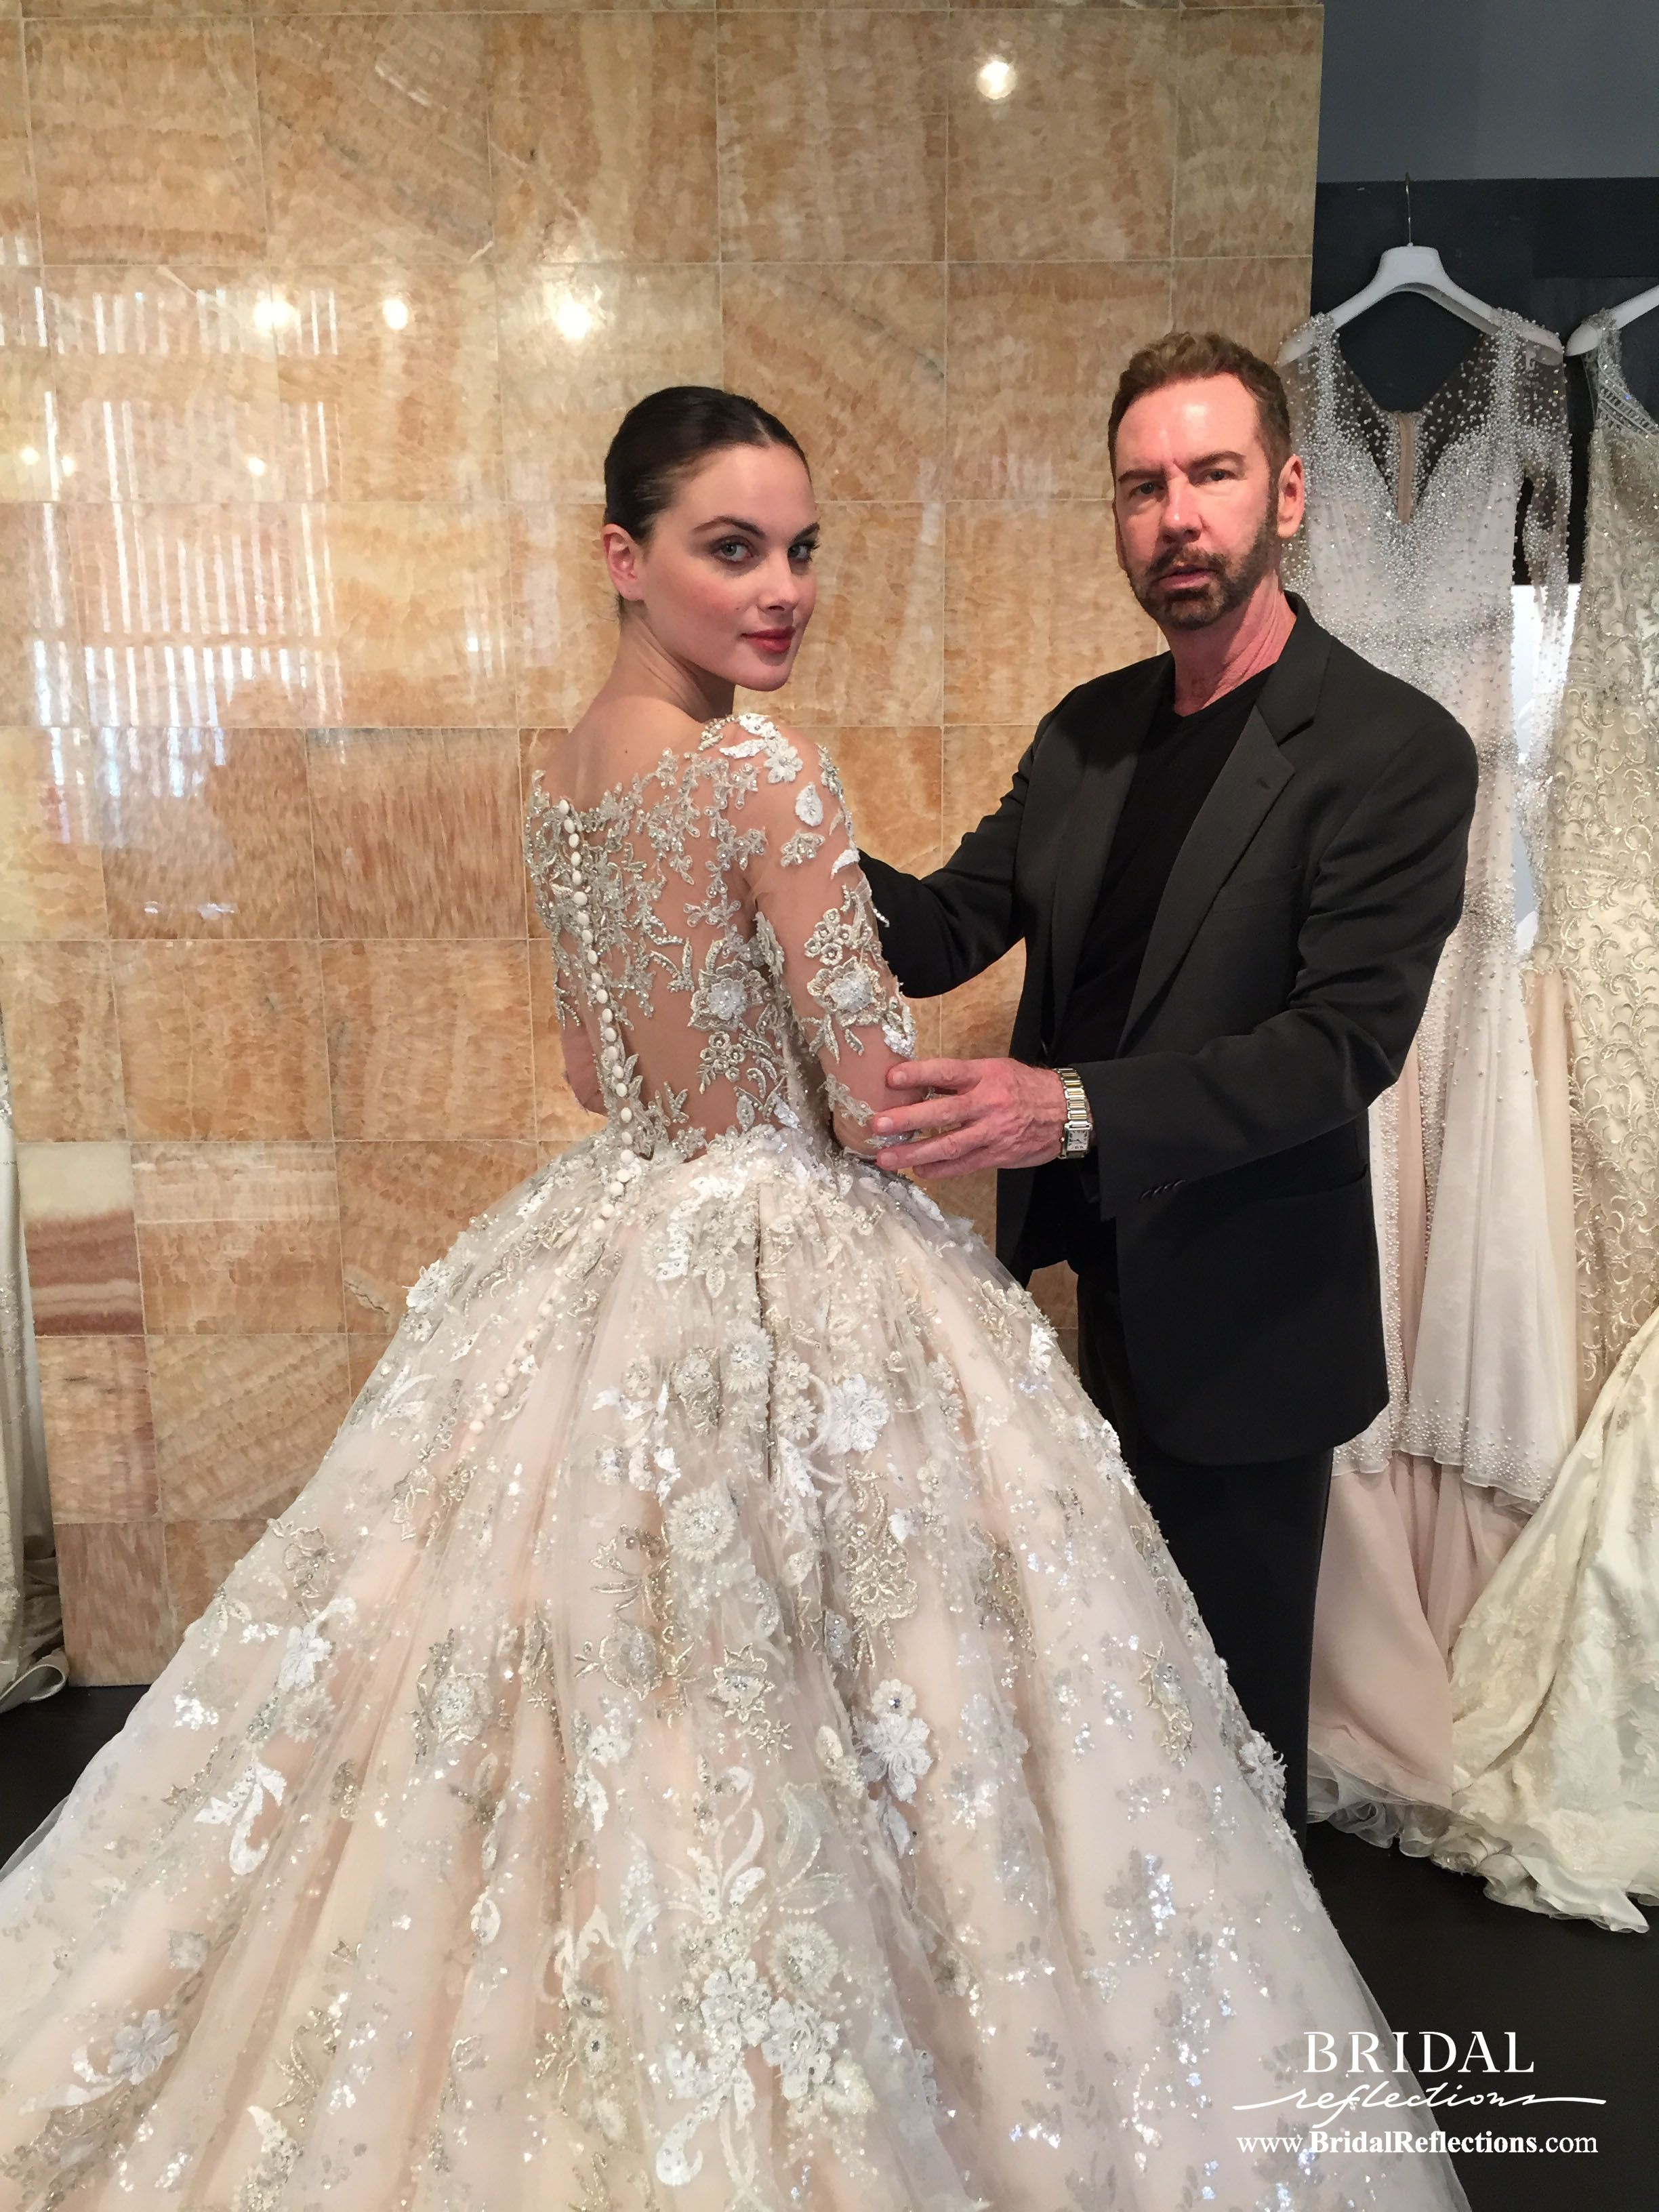 Stephen yearicks wedding dress creations and designs are stephen yearicks wedding dress creations and designs are customized to guarantee appropriate fit for any body ombrellifo Gallery